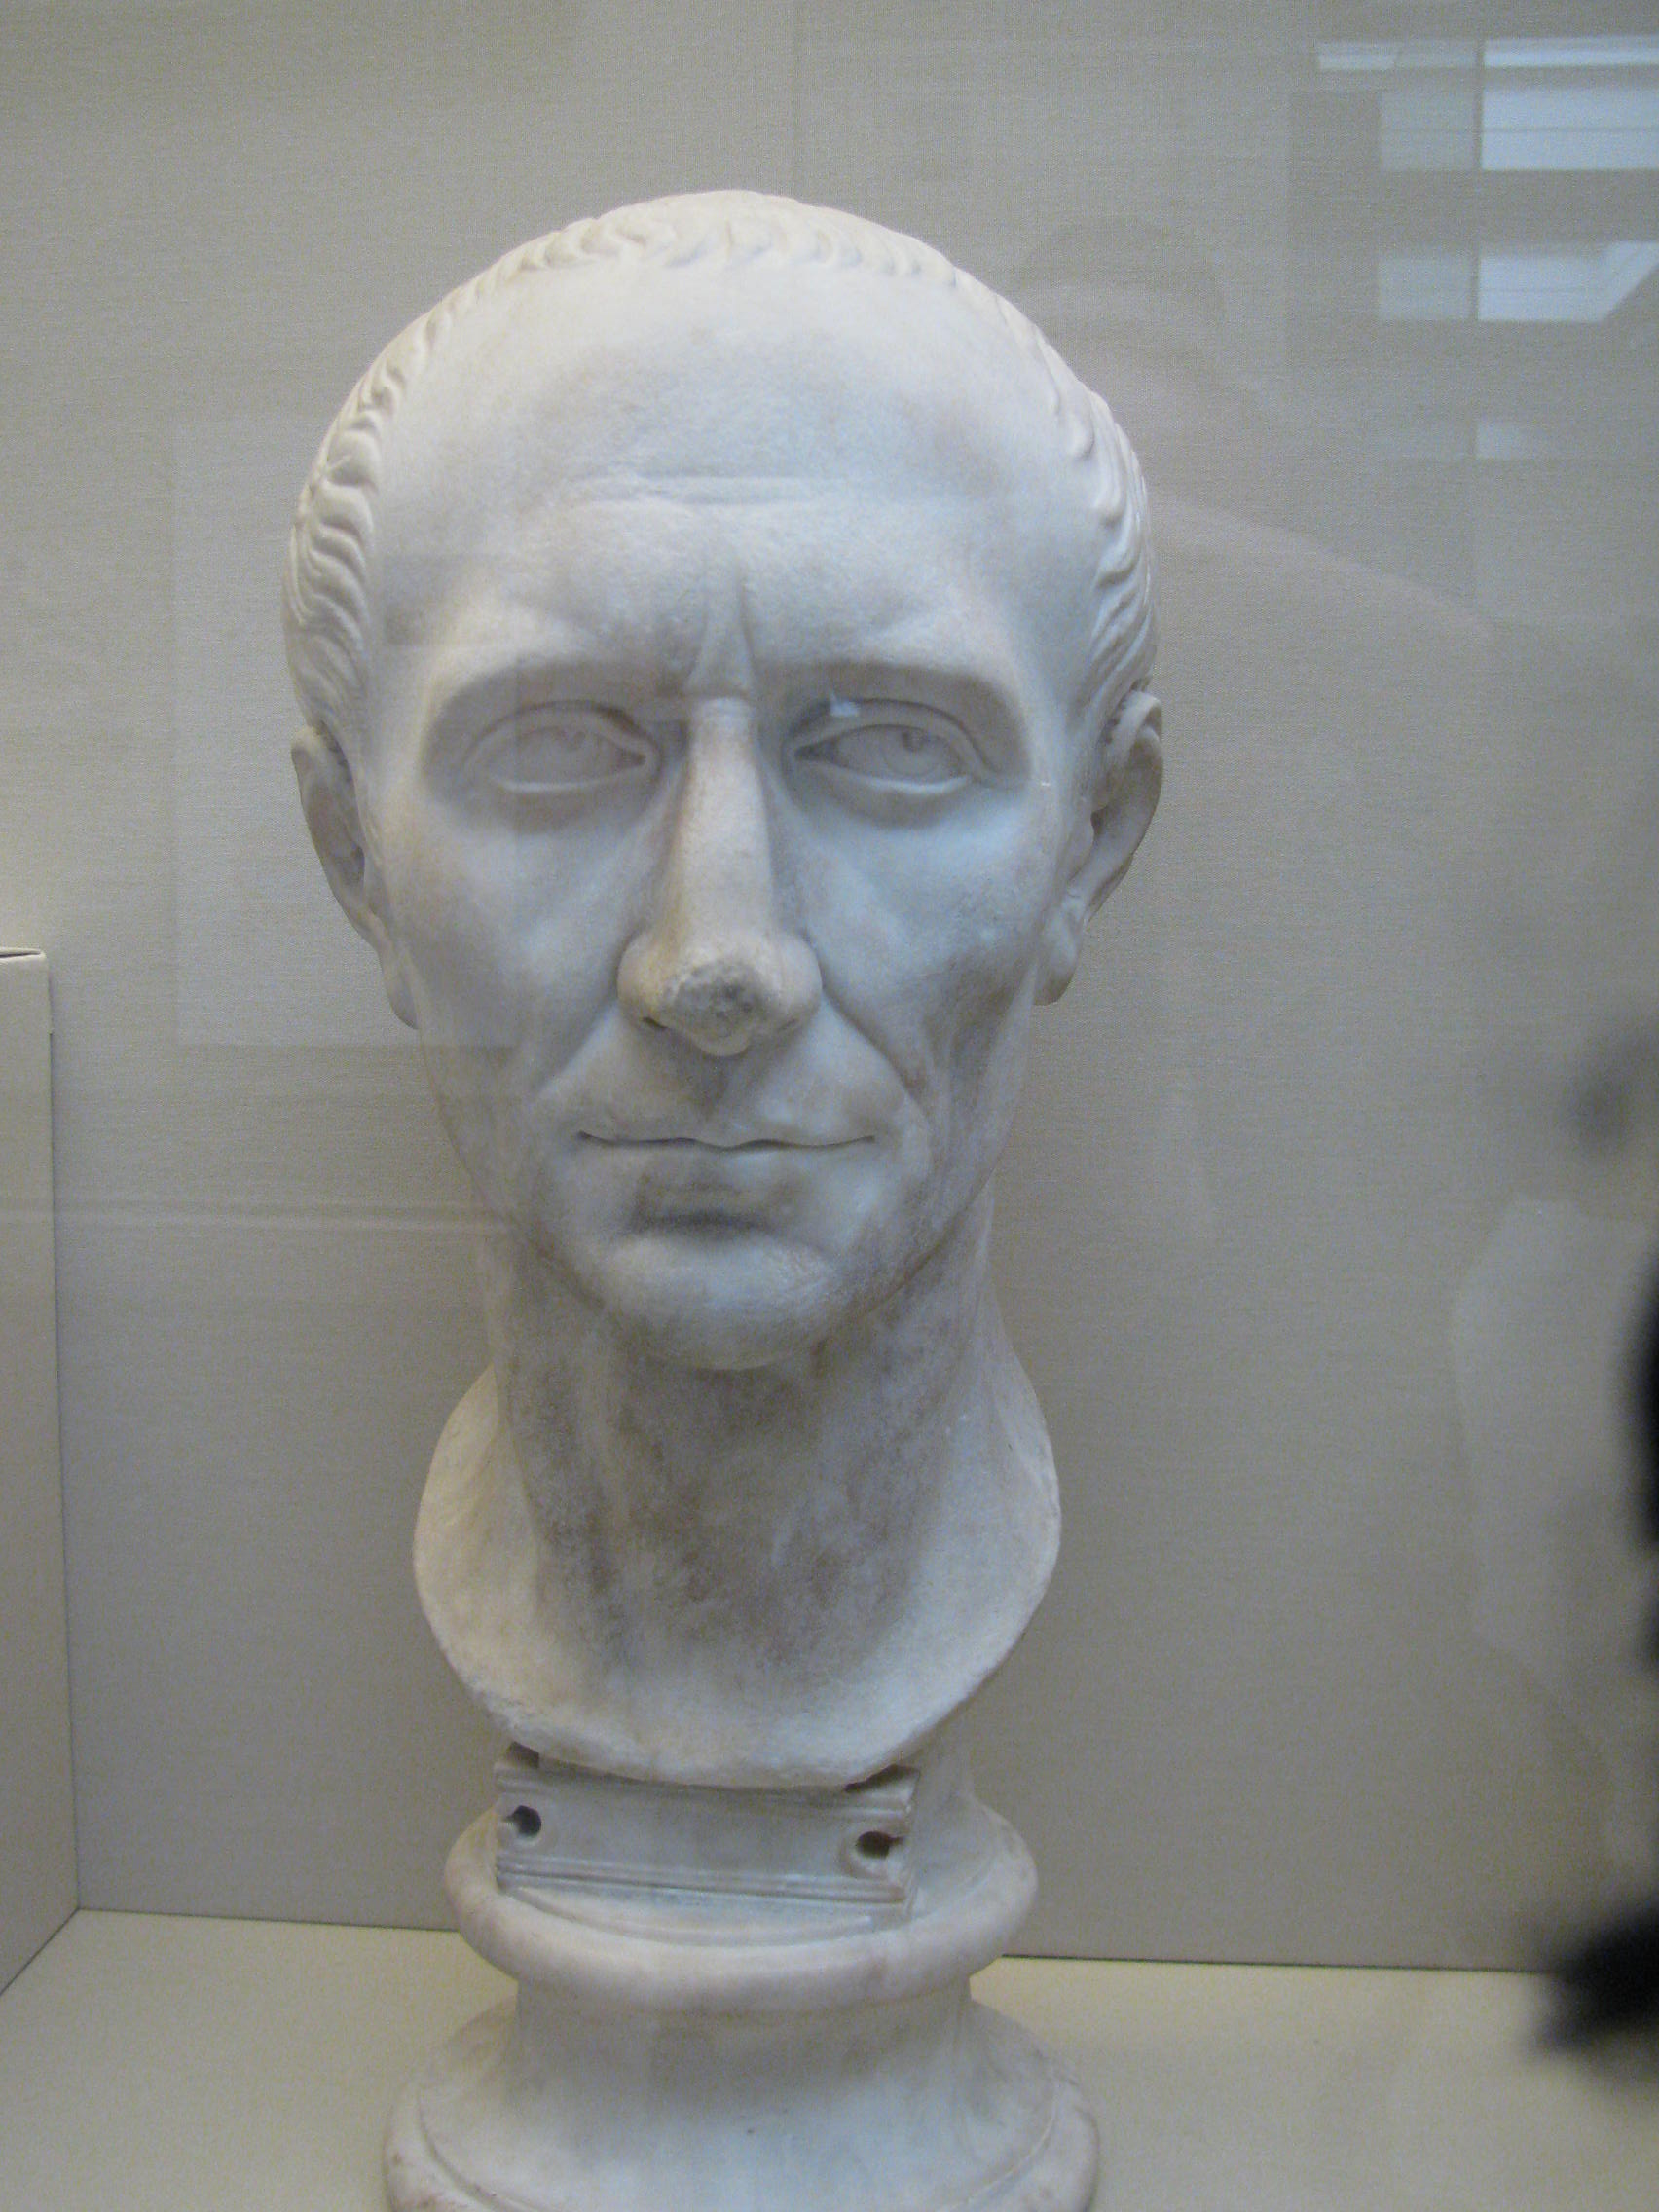 an analysis of the decisions of marcus brutus from the play julius caesar It occurs in his play, julius caesar, (act-iii, scene-i, lines, 77) julius caesar utters this phrase as his last words, addressing his close friend, brutus, in the play however, the history does not seem to support this, as it is a widely debated subject among historians and dramatists alike.